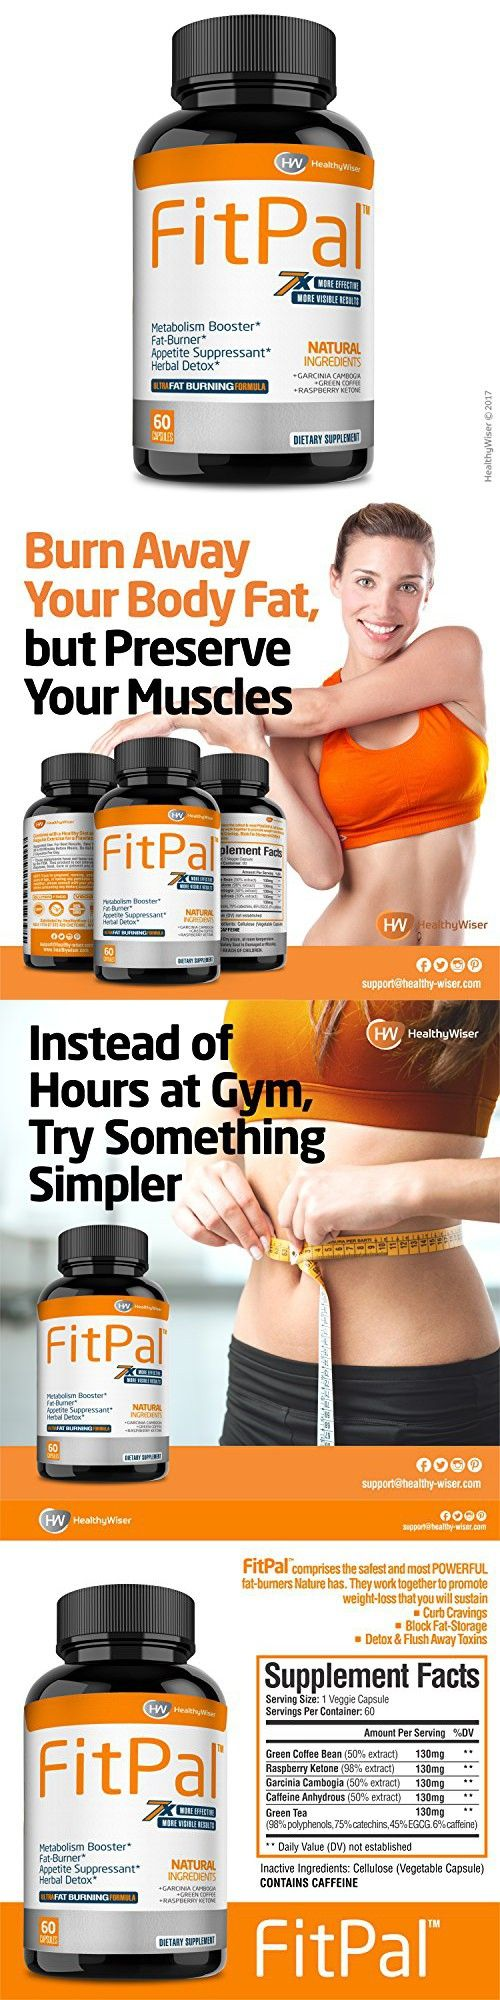 FITPAL Natural Thermogenic Fat Burner  Energy and Metabolism Booster - Weight Loss Pills With Green Coffee, Garcinia Cambogia & Raspberry Ketones, Effective Herbal Detox and Appetite Suppressant